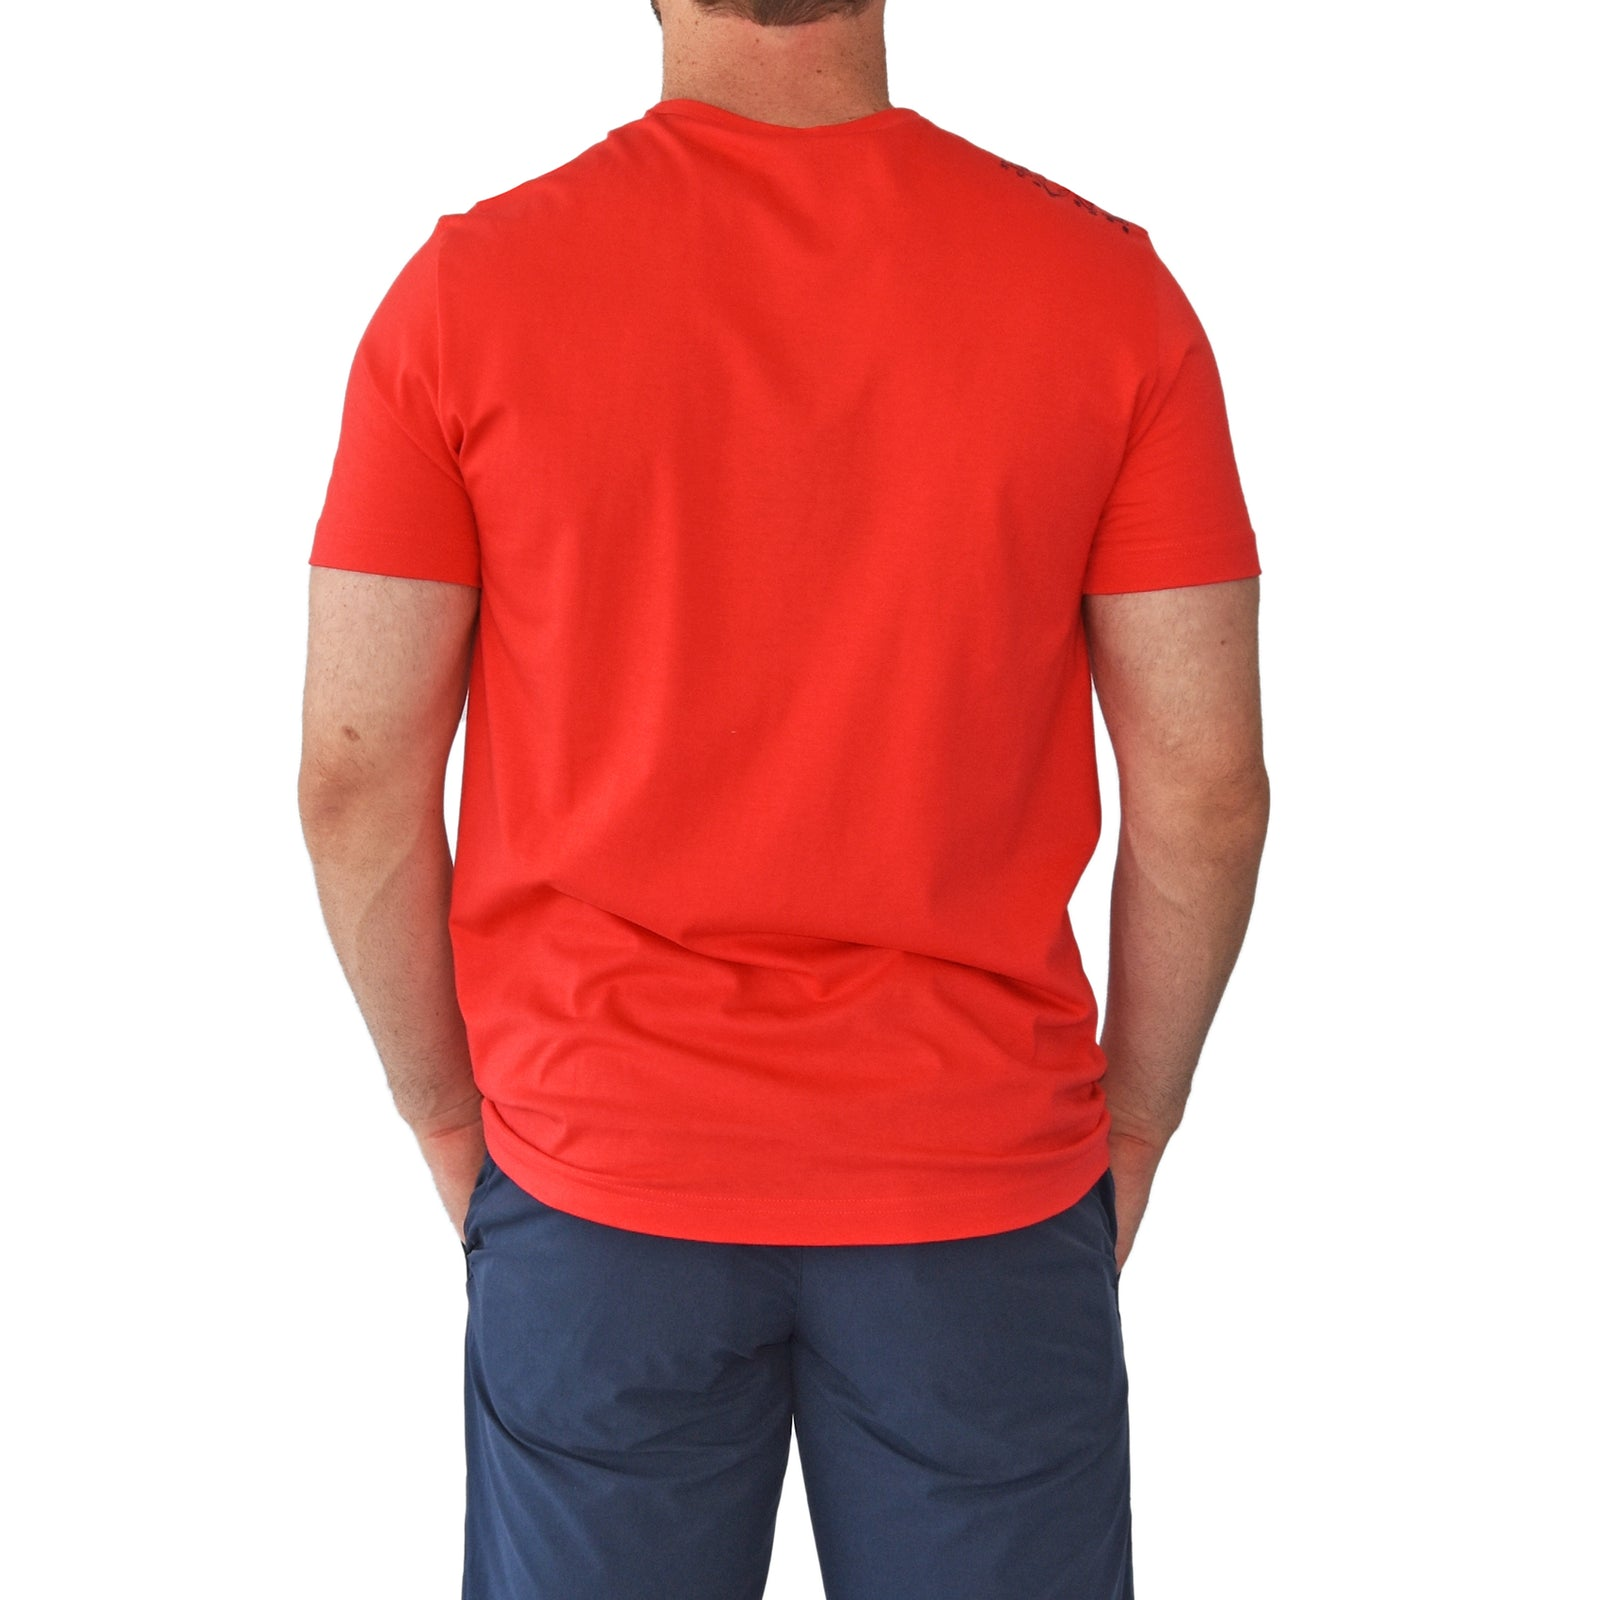 Hugo Boss Tee Reg Fit T-Shirt - Bright Red